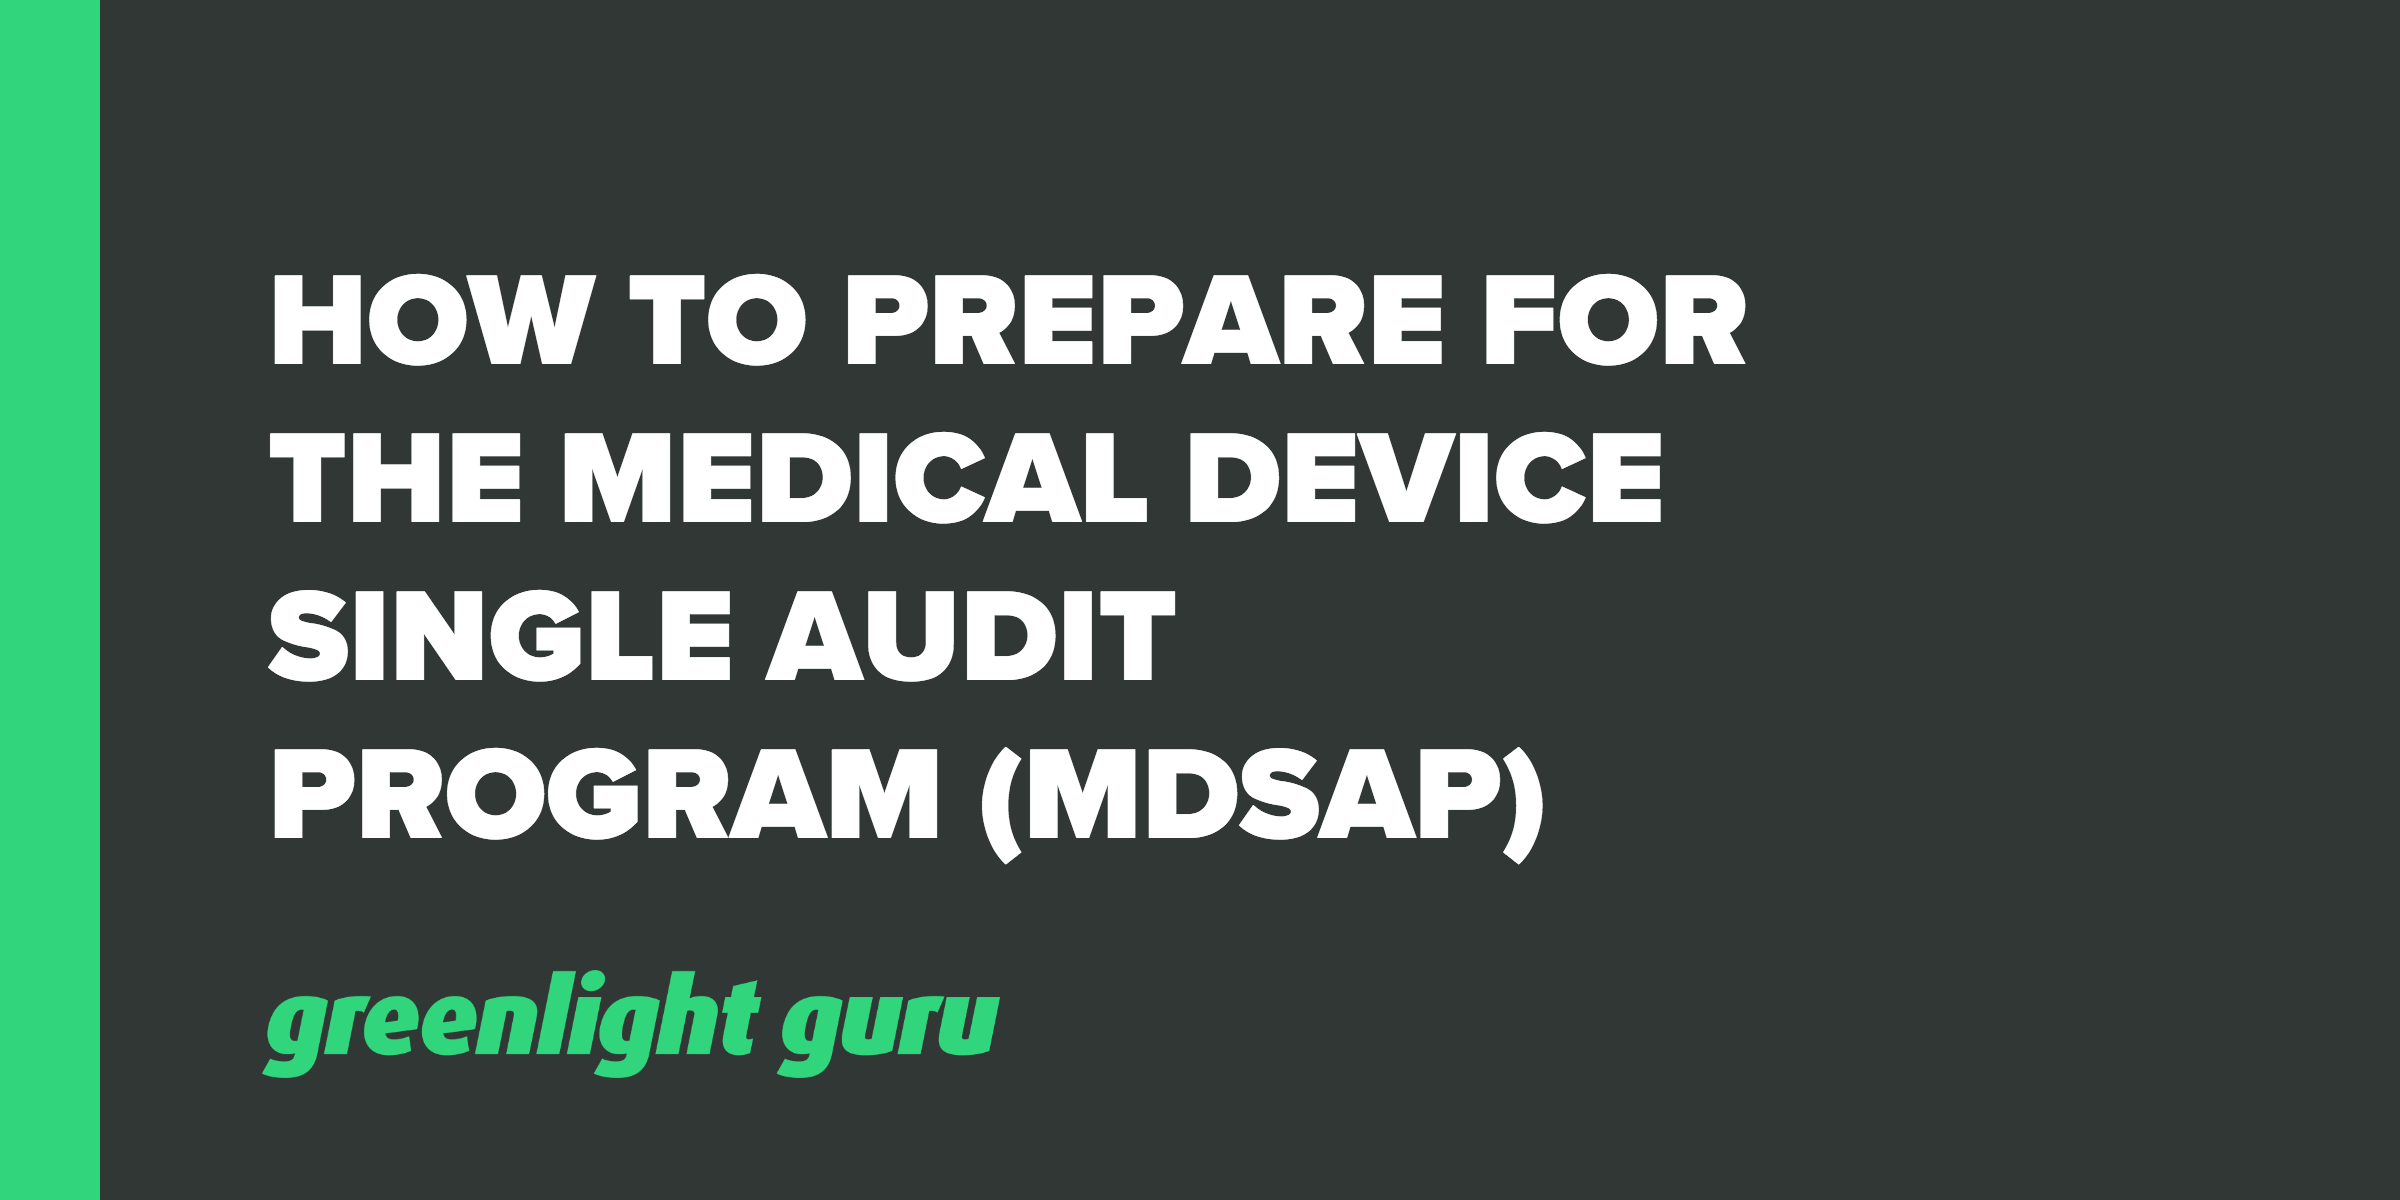 How to Prepare for the Medical Device Single Audit Program (MDSAP) - Featured Image